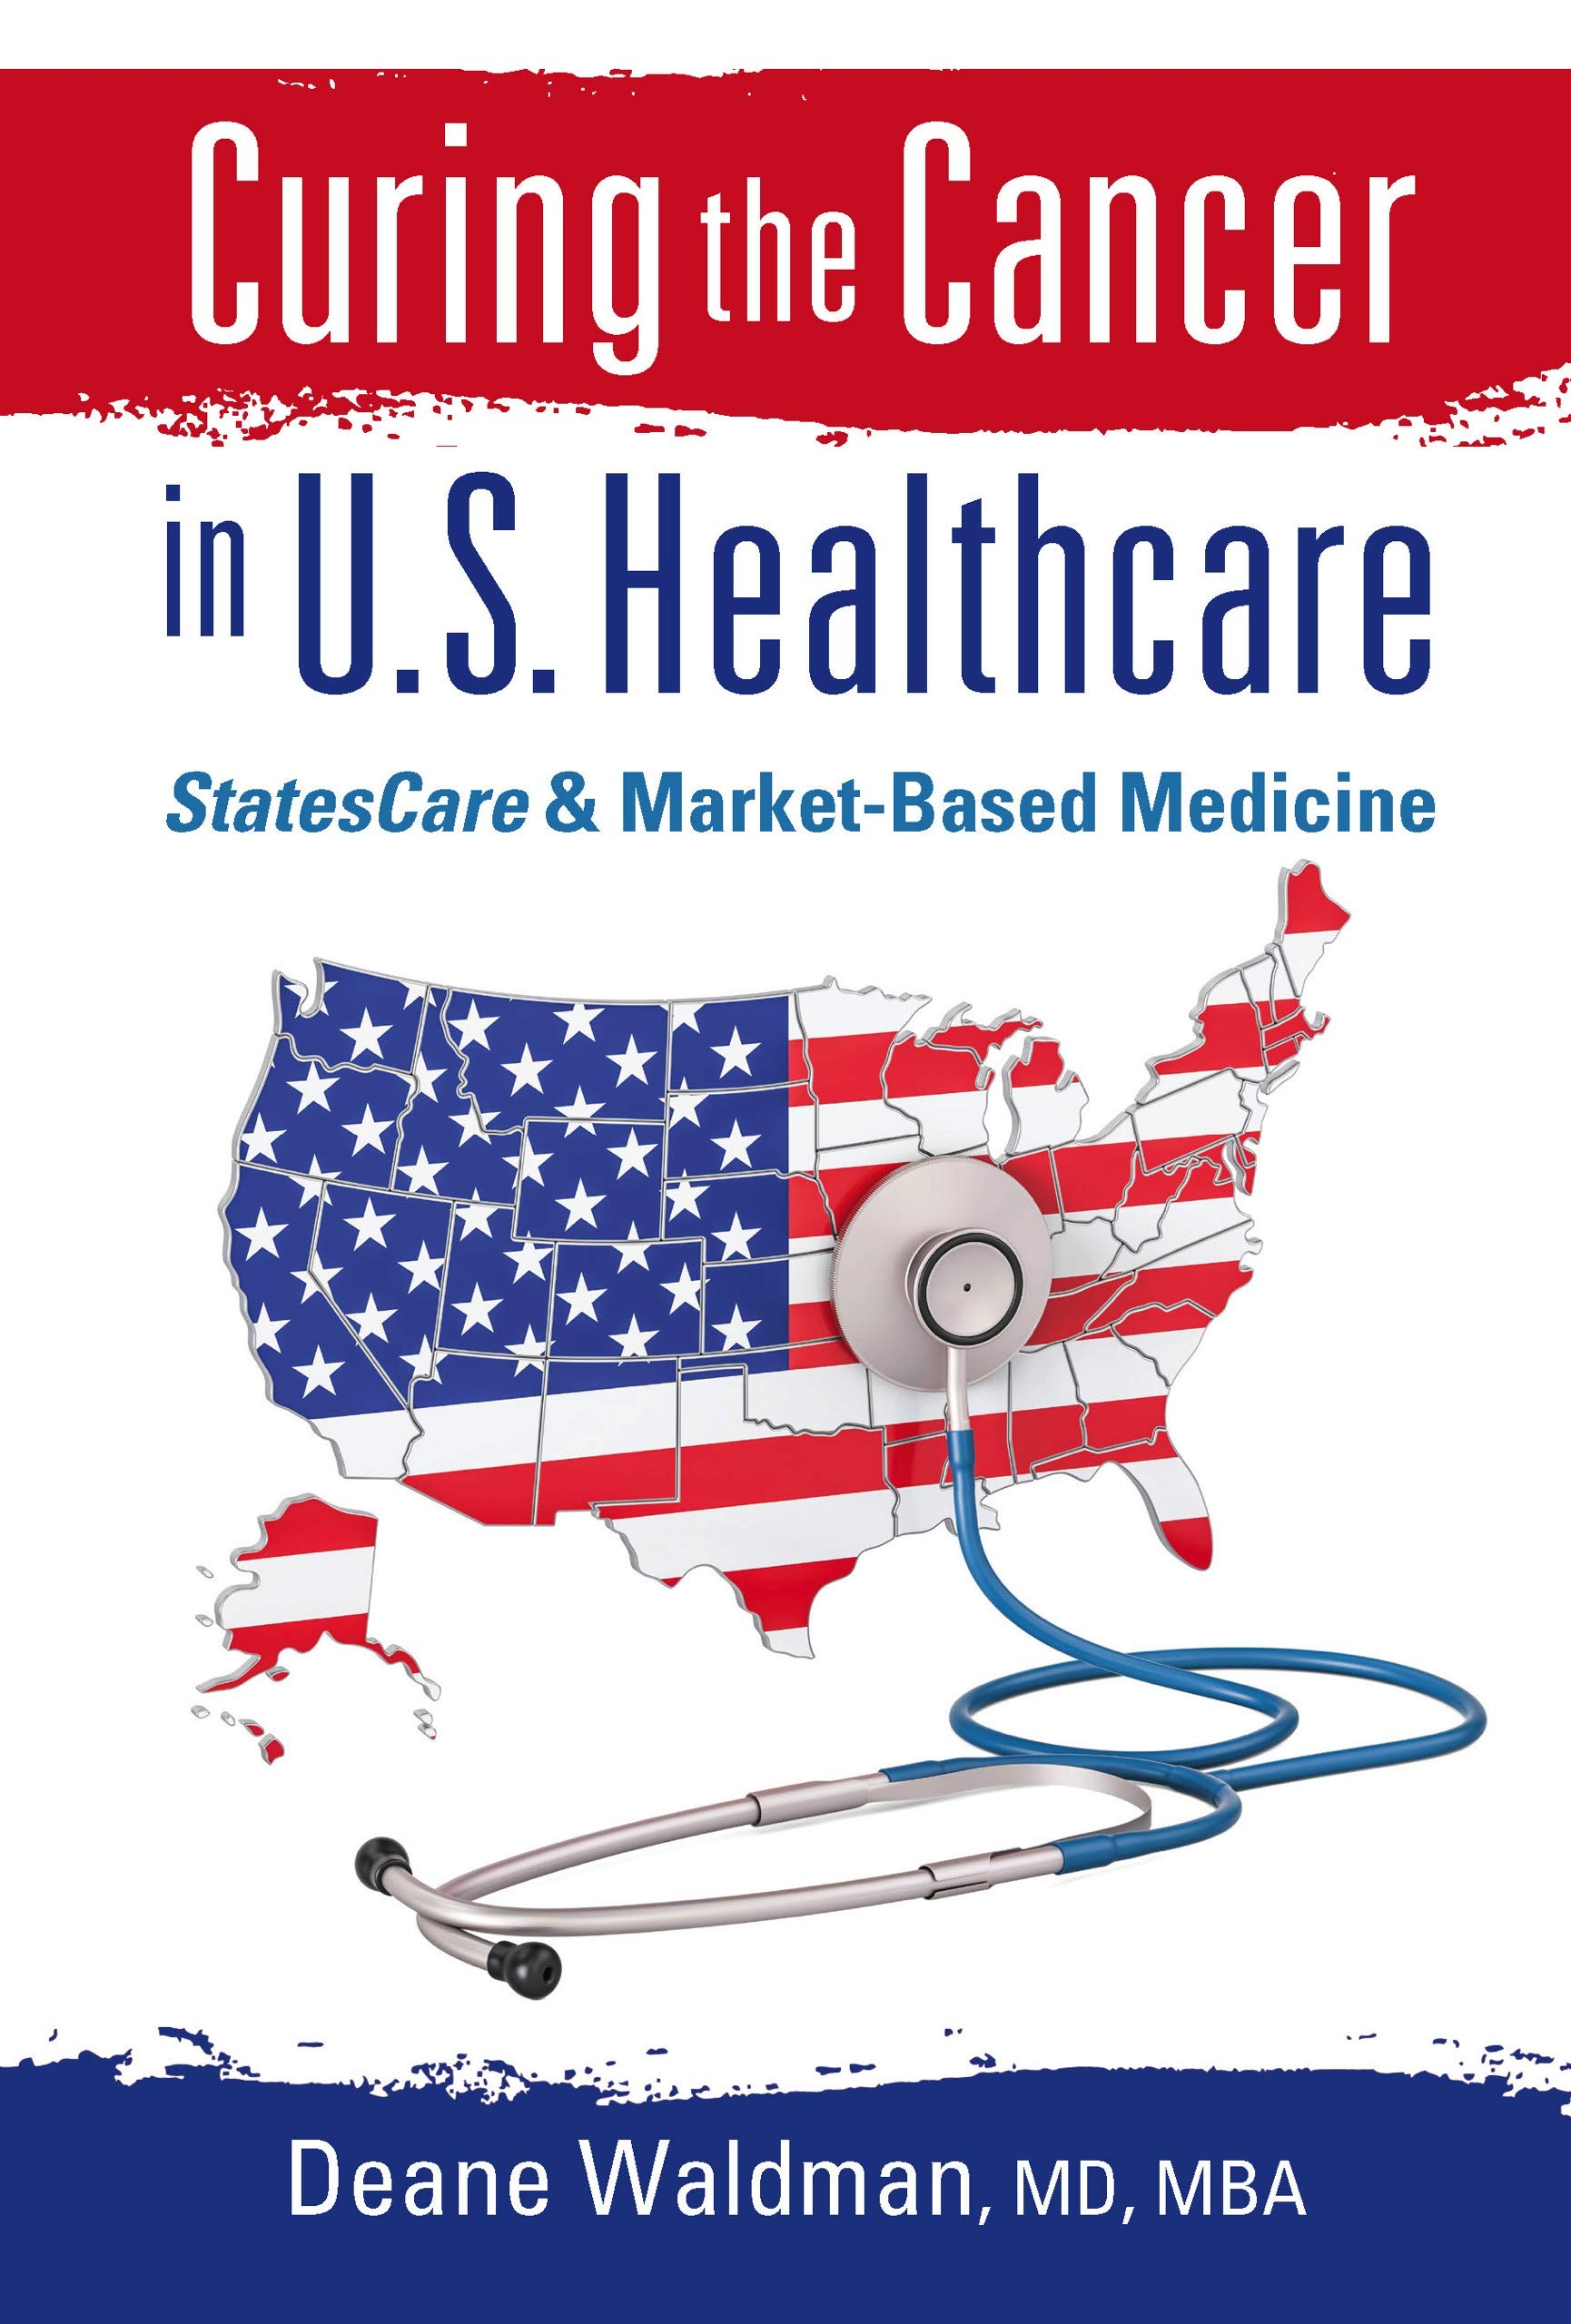 Curing the Cancer in U.S. Healthcare: StatesCare & Market-Based Medicine